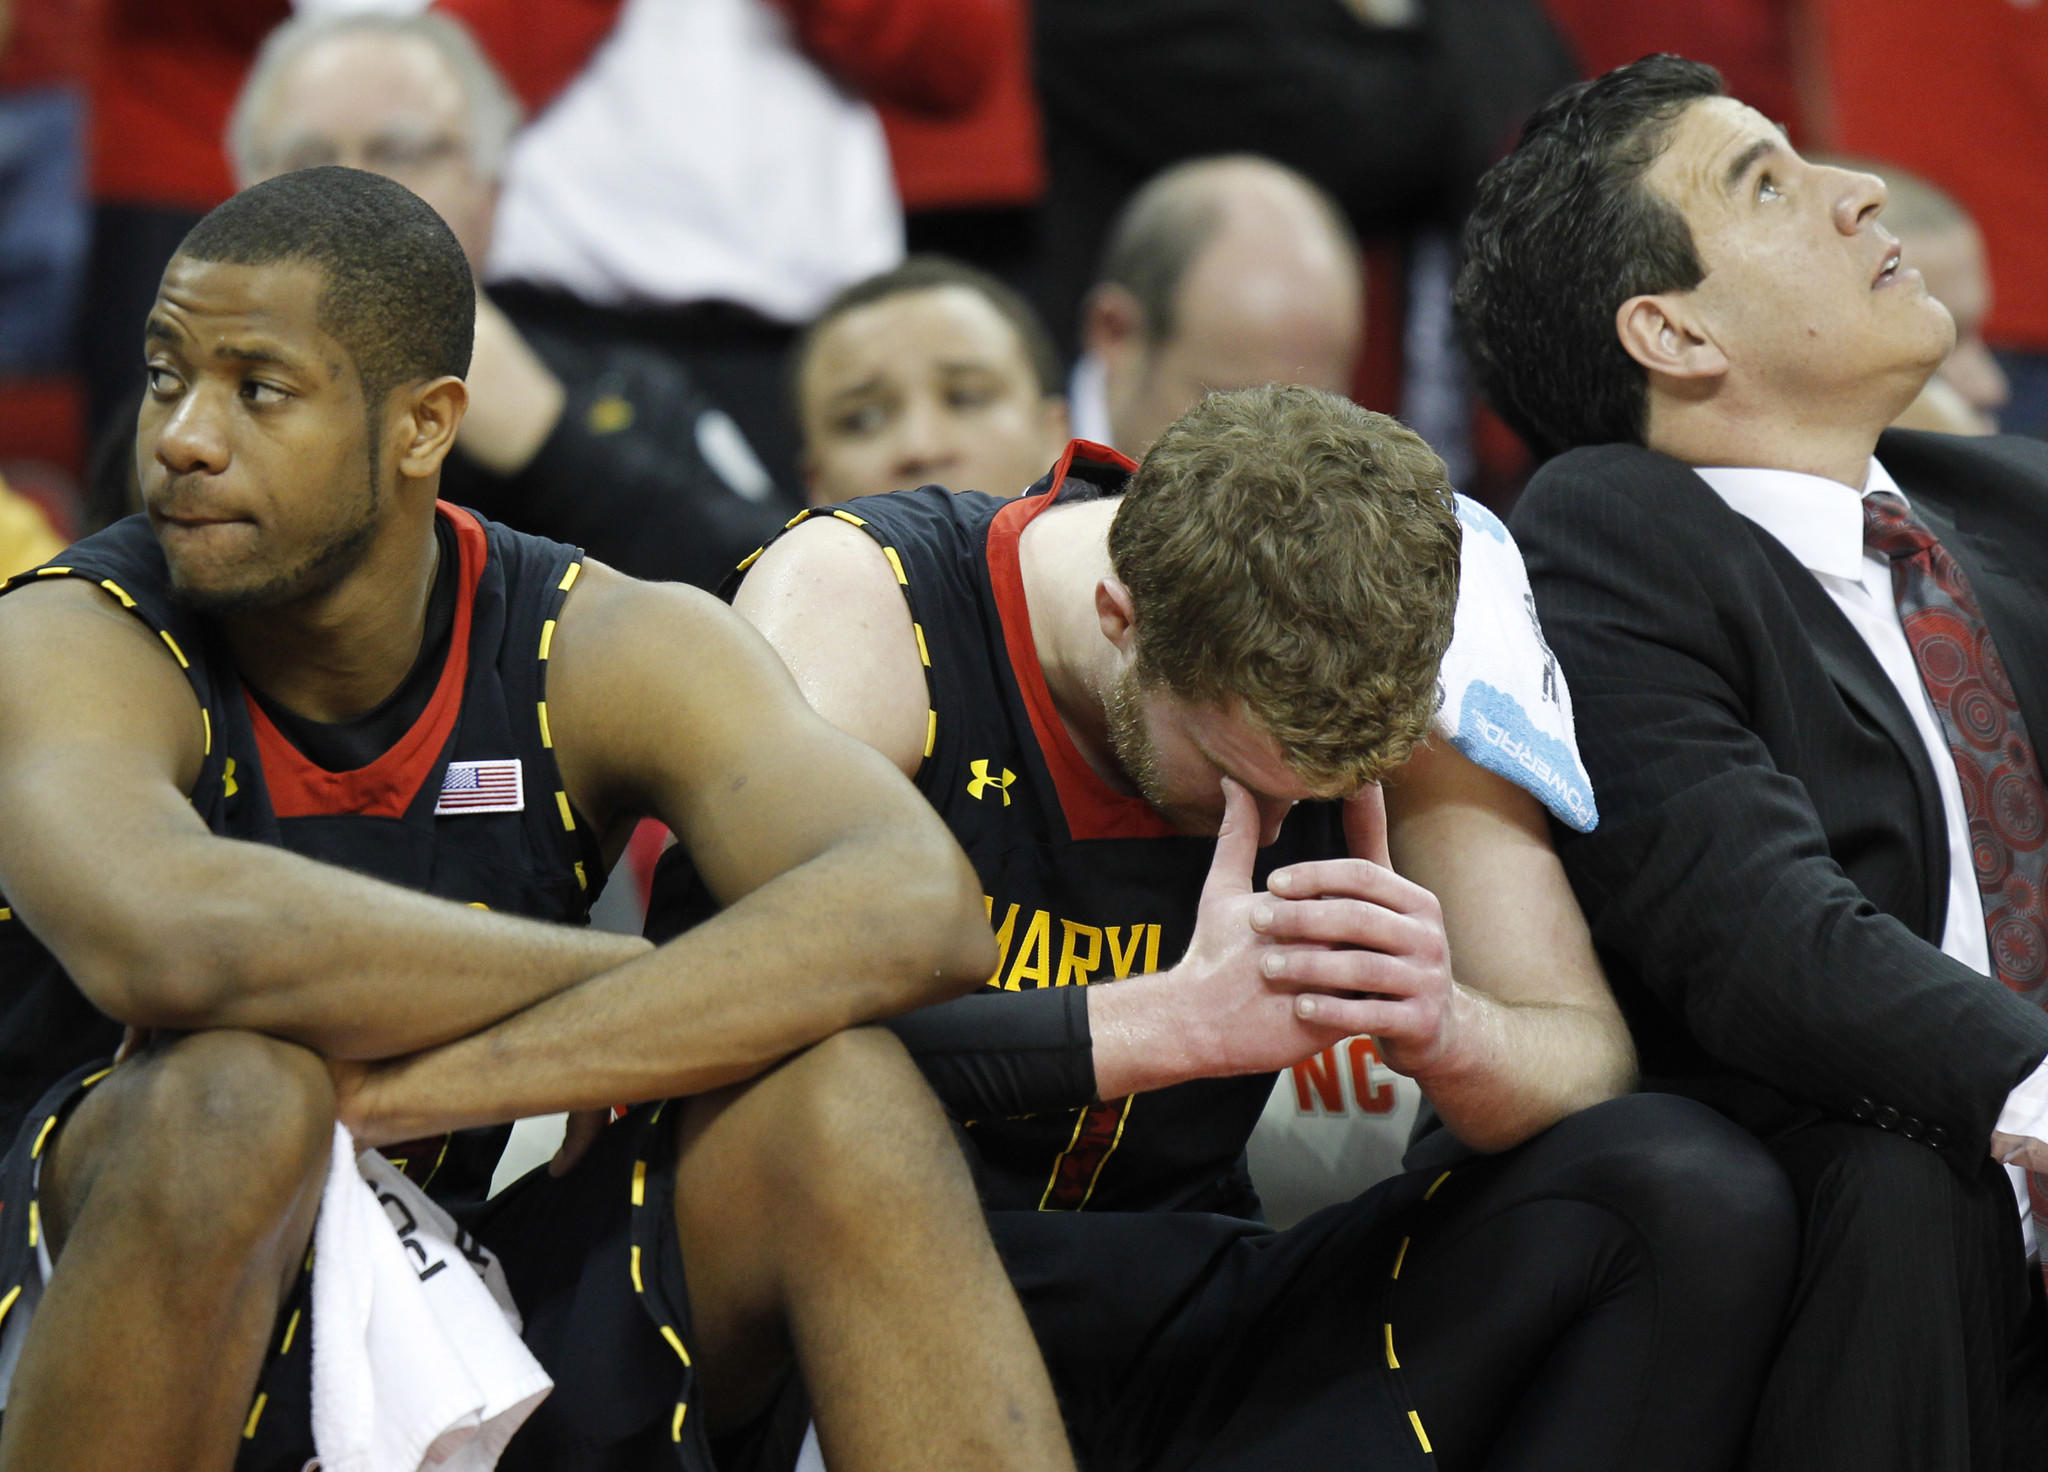 Maryland forward Damonte Dodd (left) and forward Evan Smotrycz (center)react during the game against North Carolina State.